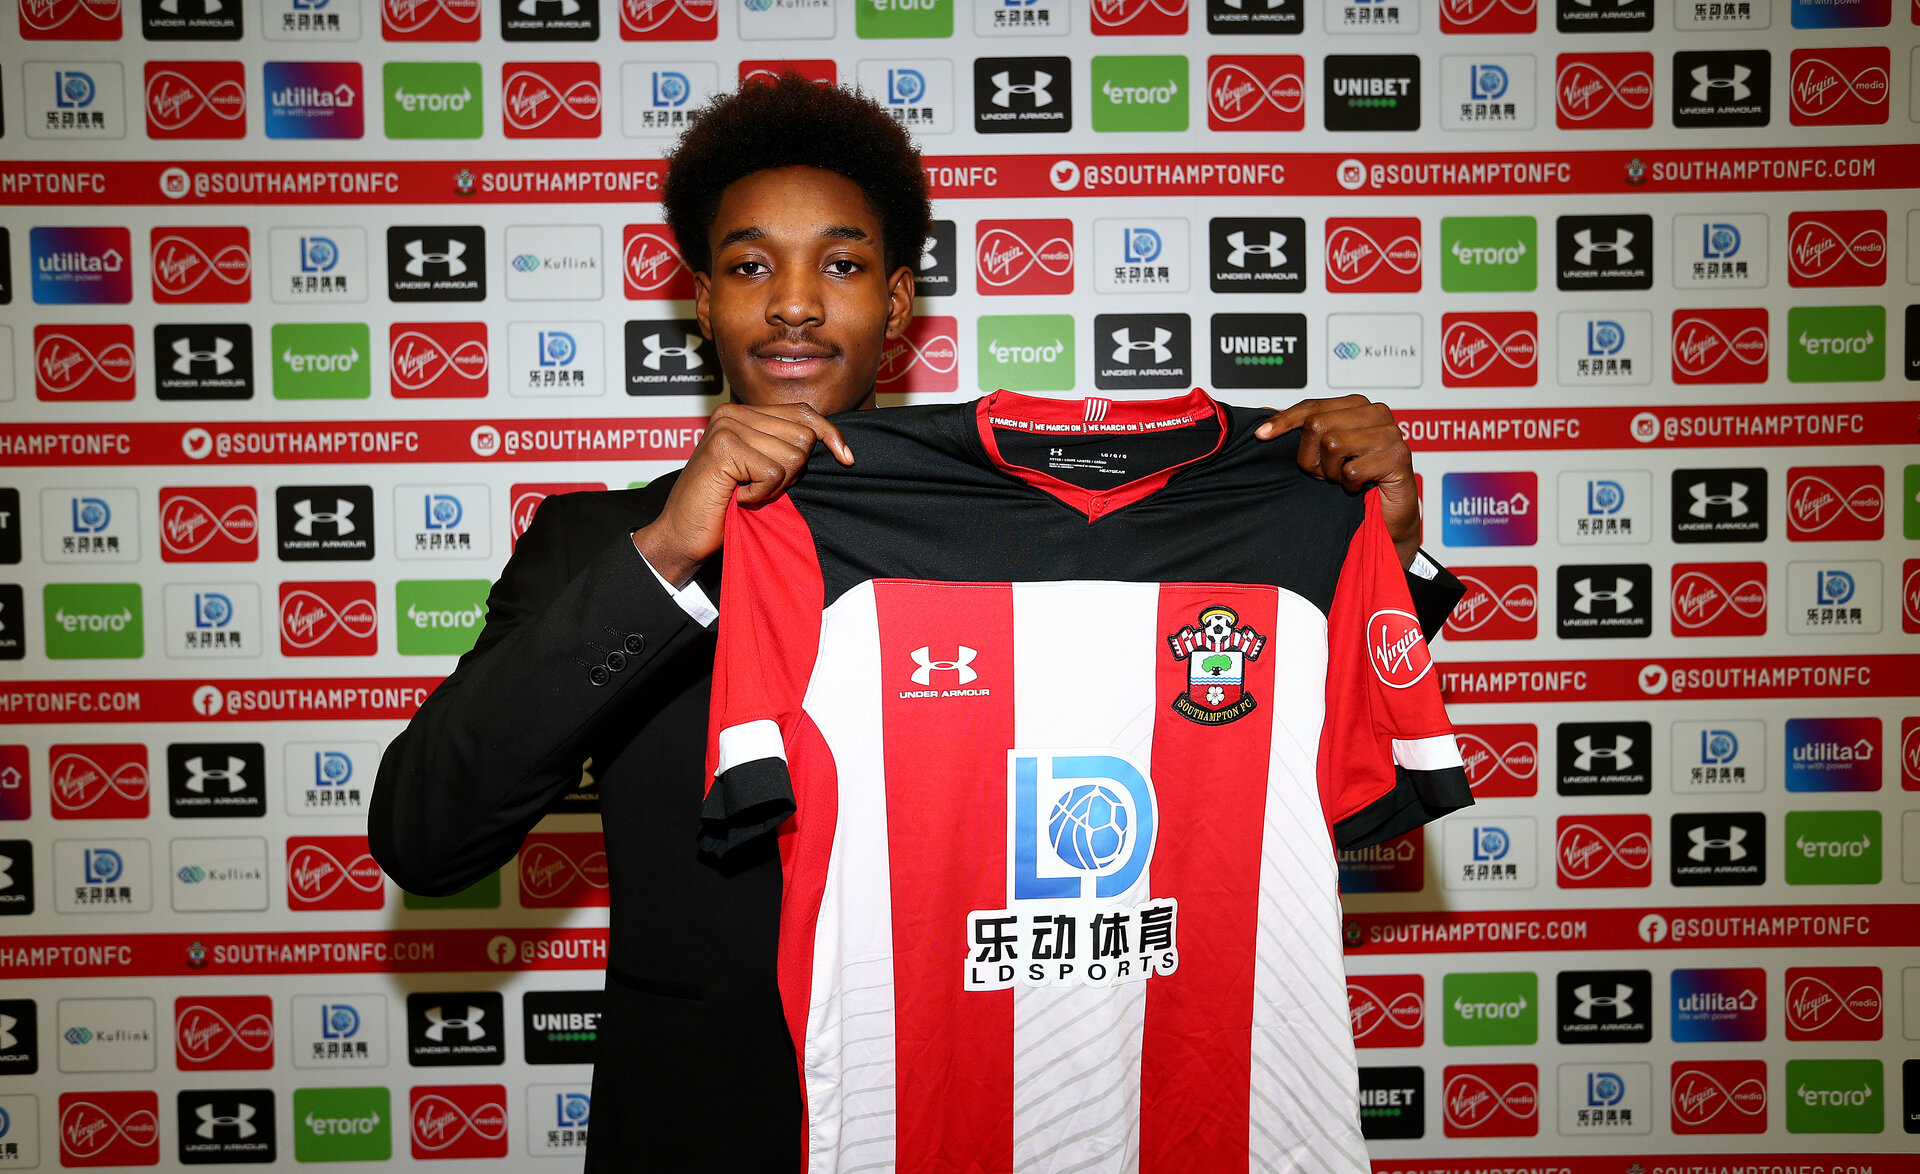 SOUTHAMPTON, ENGLAND - DECEMBER 02: Ramello Mitchell signs his first professional contract with Southampton FC, at the Staplewood Campus on December 02, 2019 in Southampton, England. (Photo by Matt Watson/Southampton FC via Getty Images)